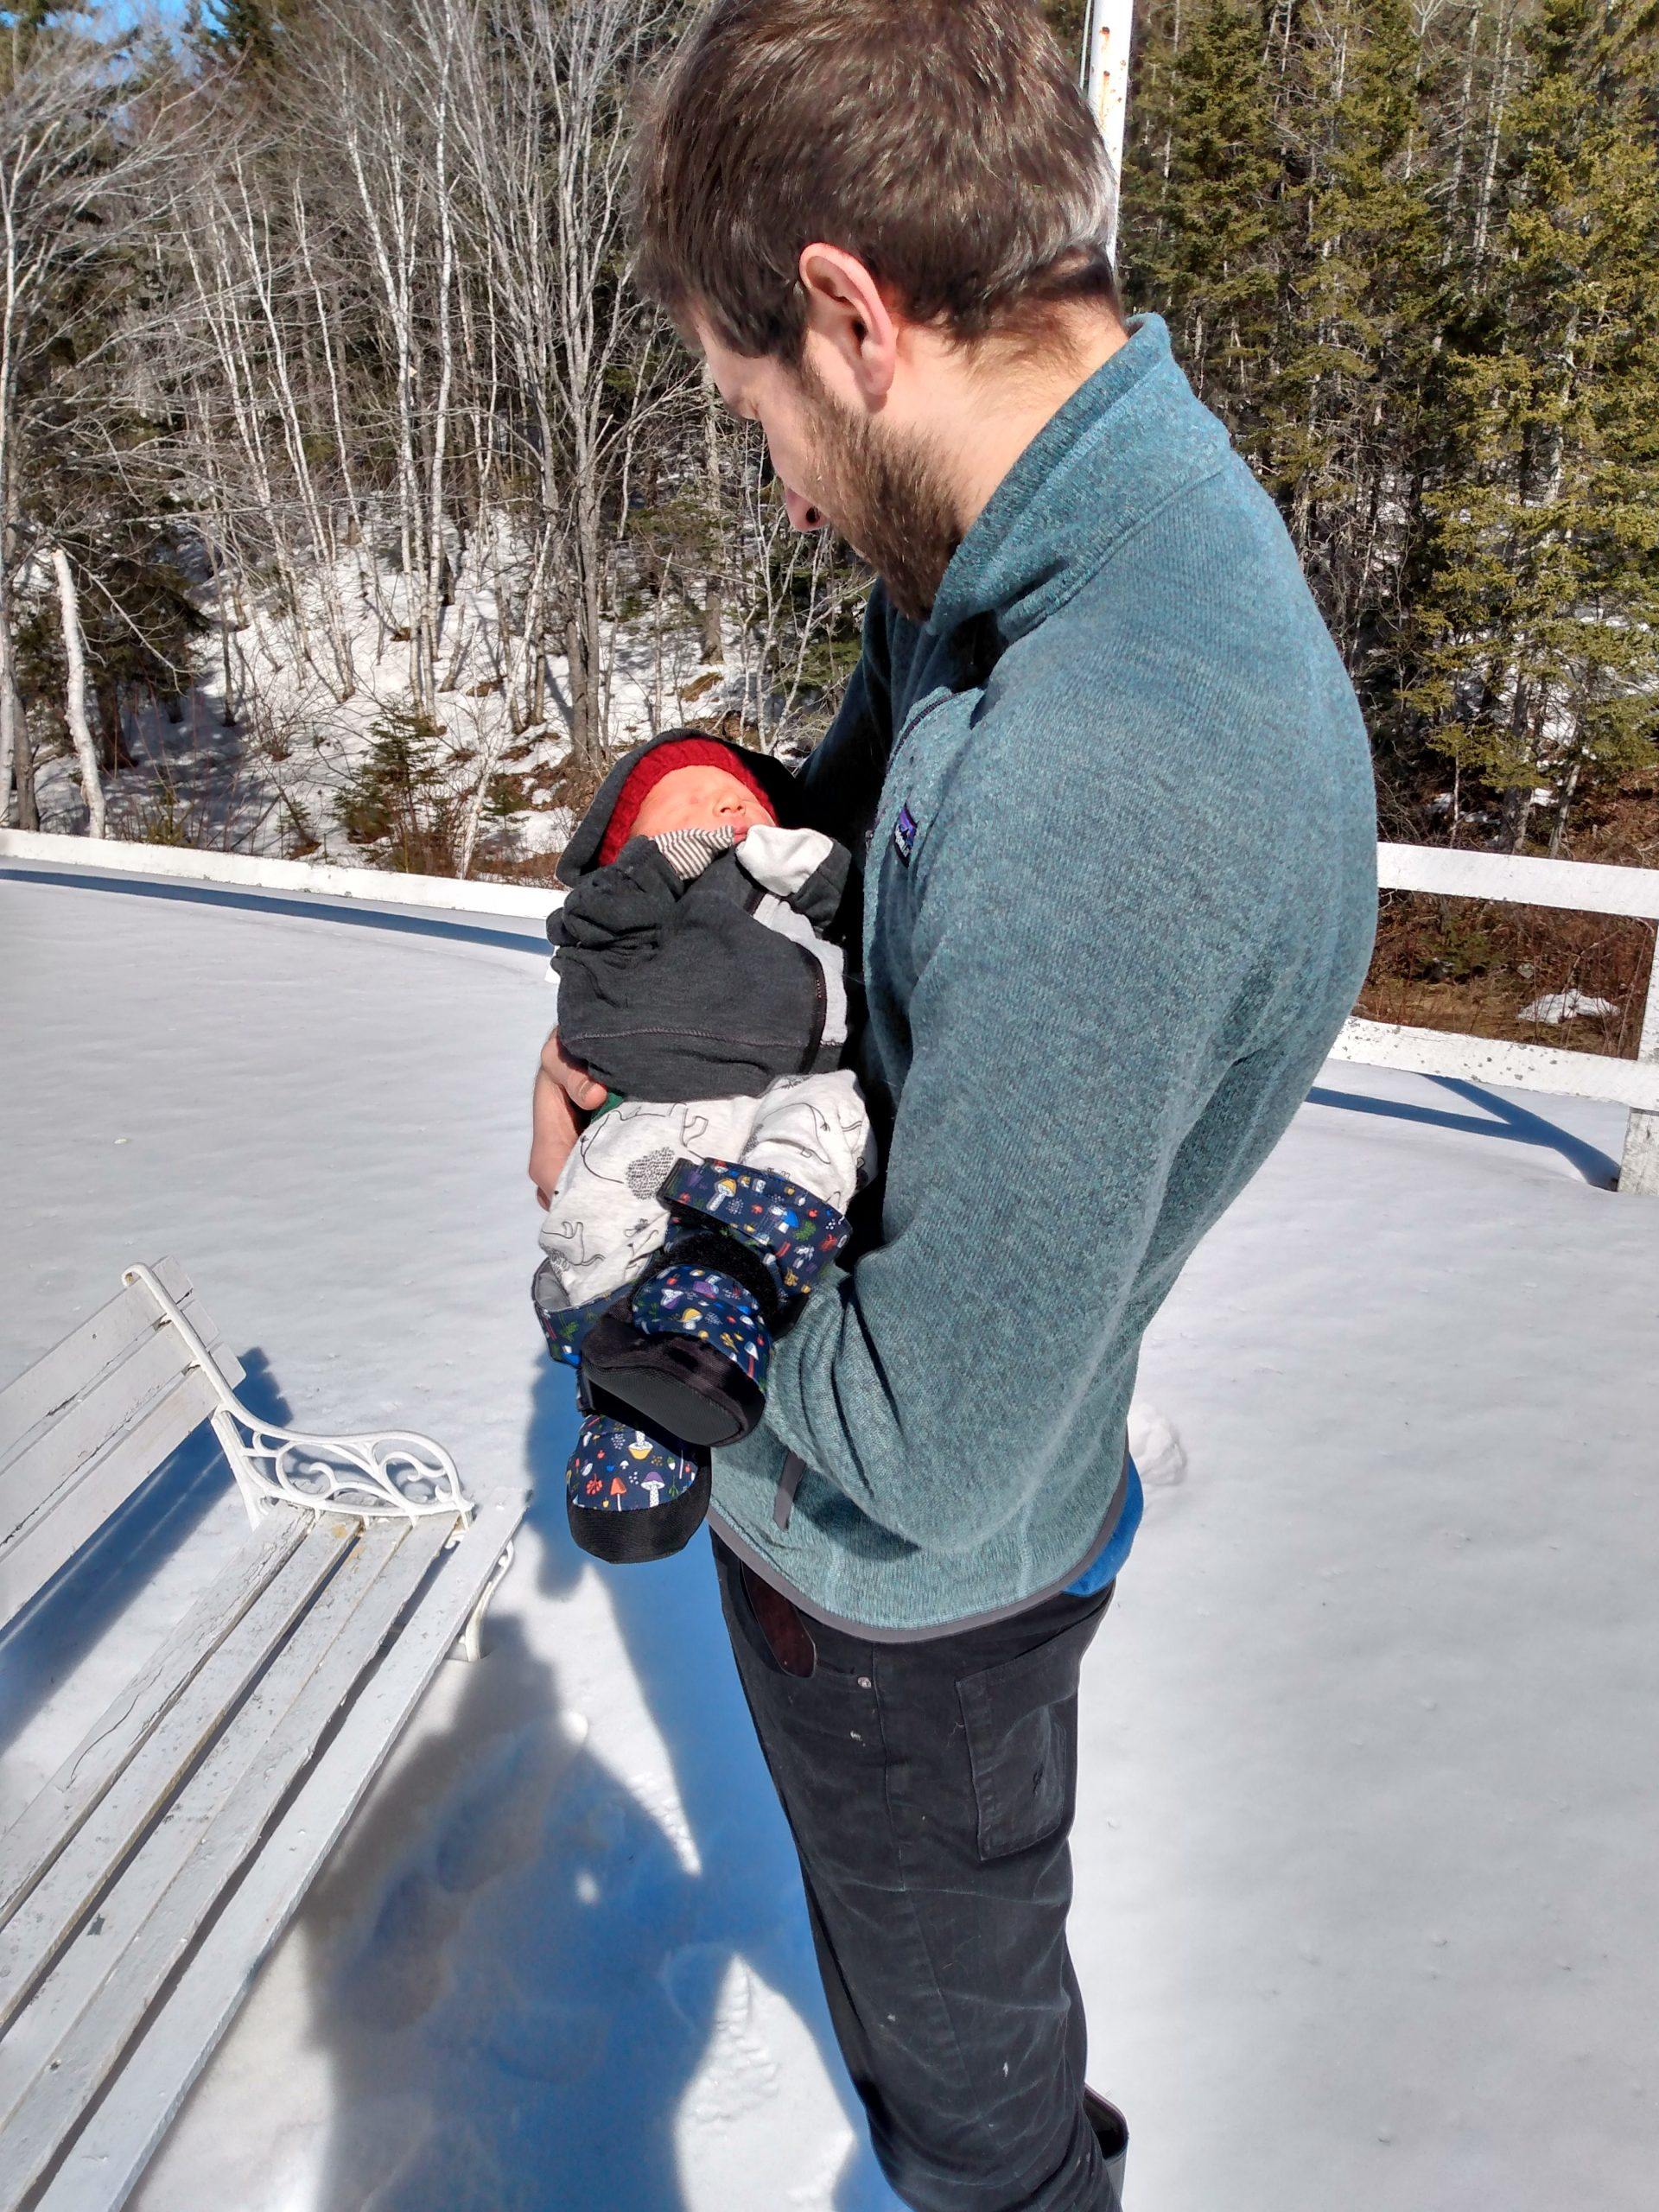 Josh standing outside in snow with his new baby.